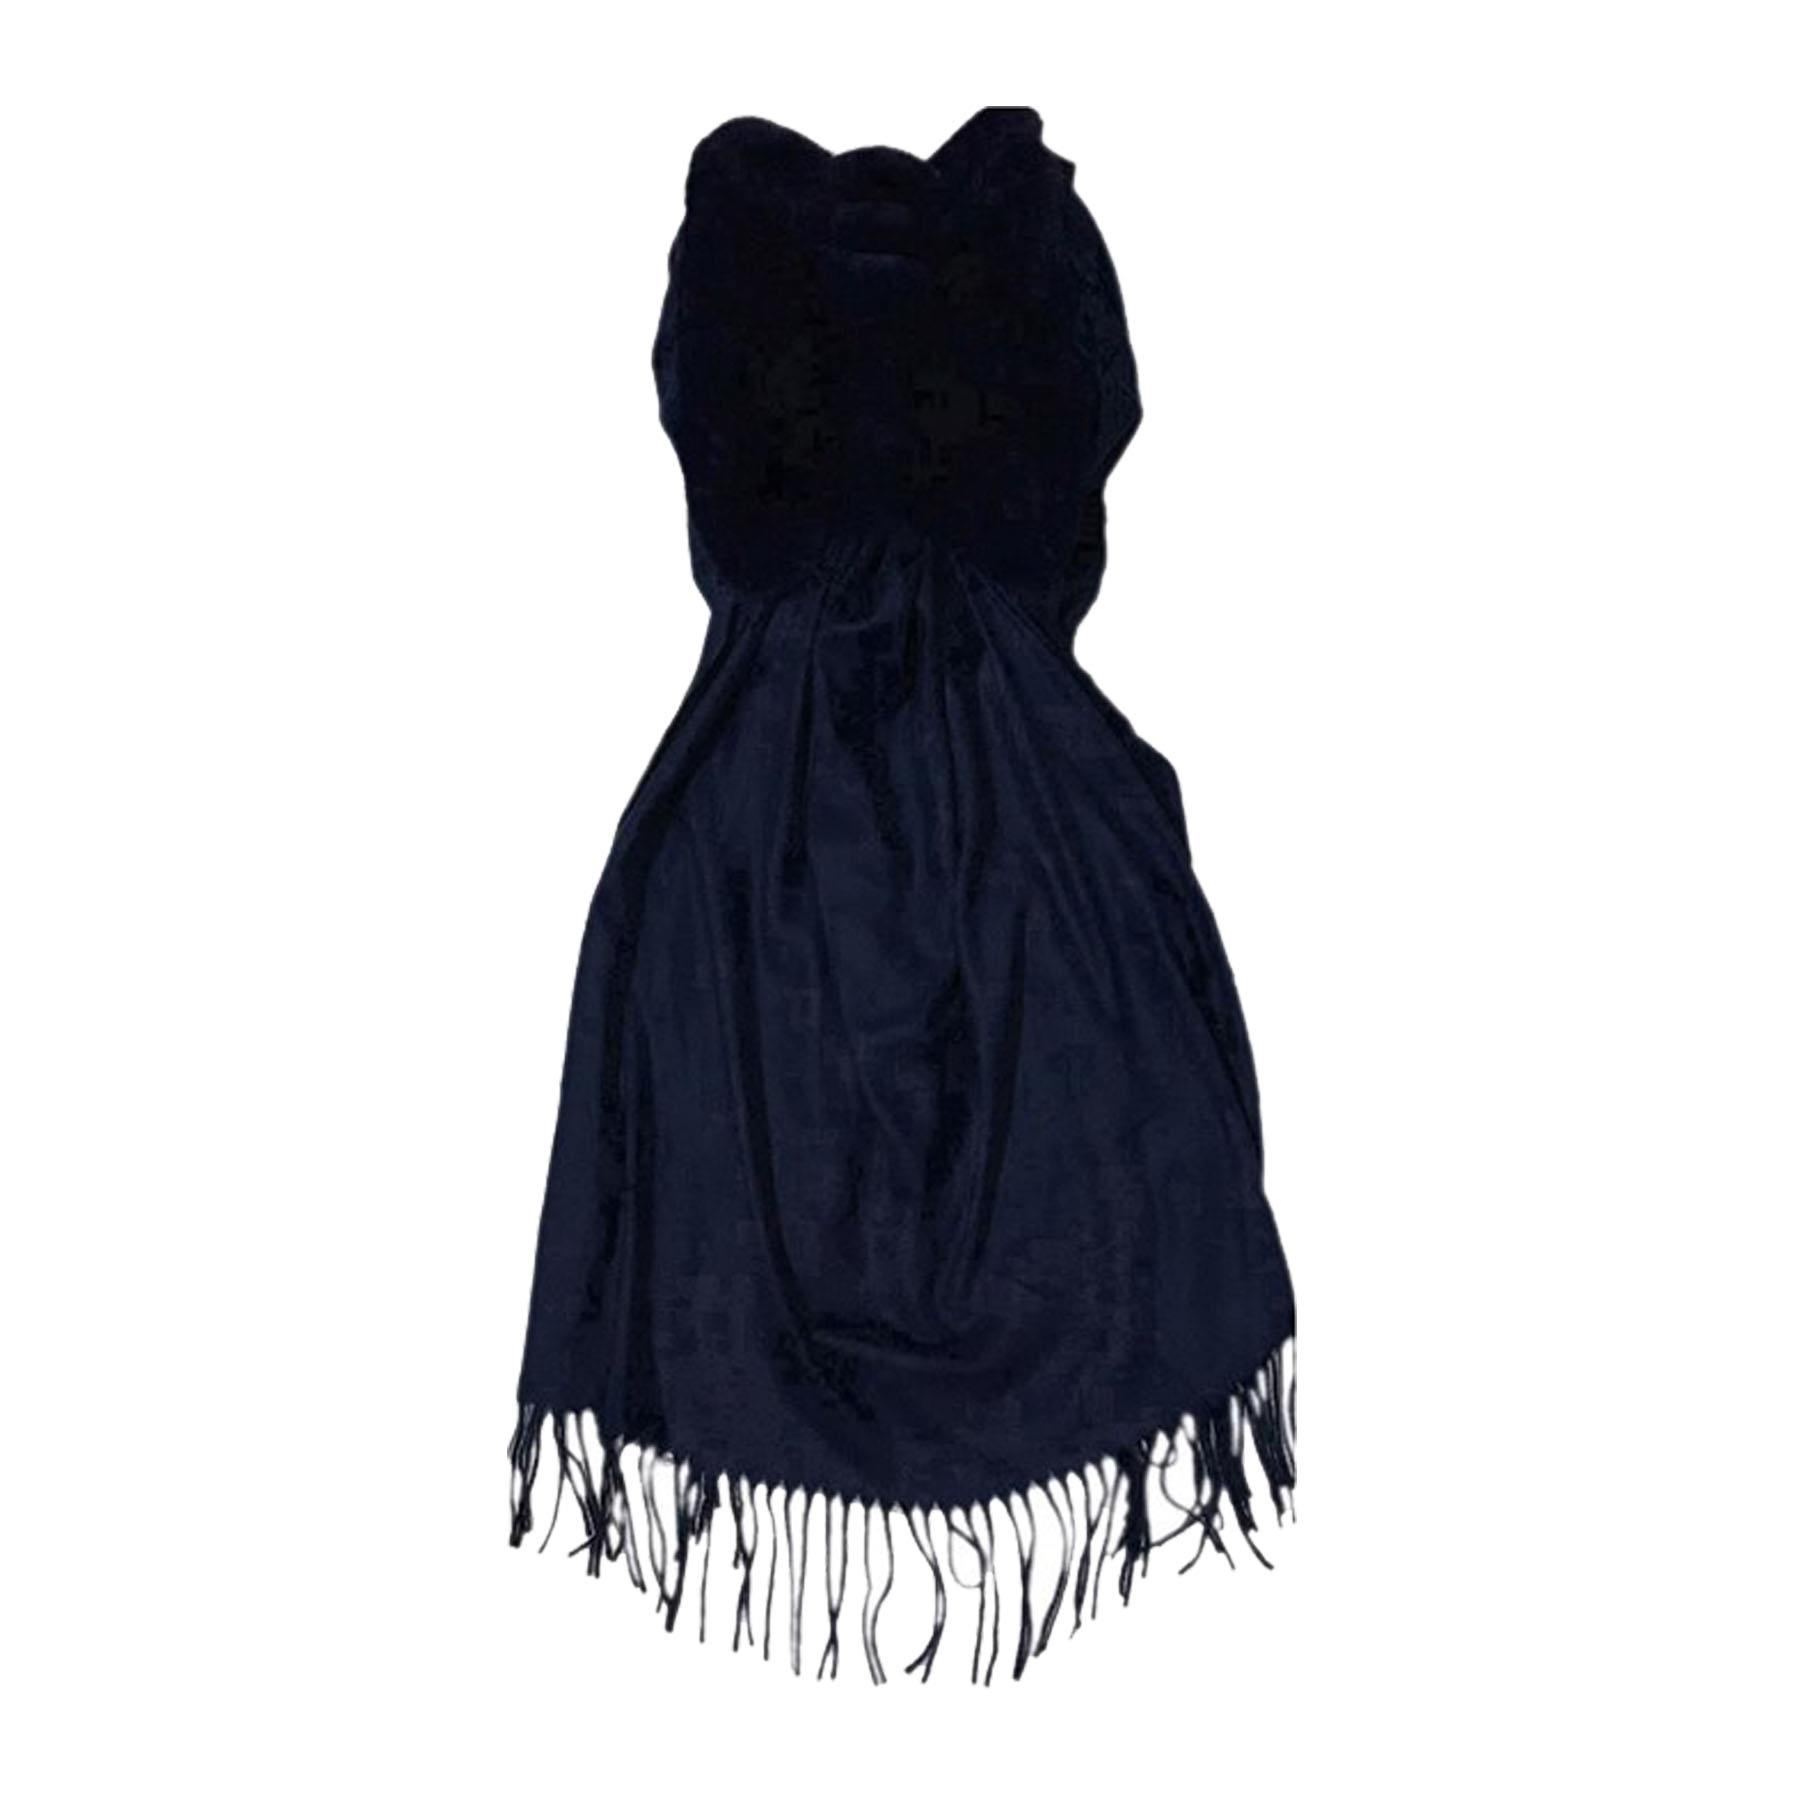 New-Women-s-Soft-Synthetic-Fur-Collar-Stylish-Fashion-Winter-Scarves thumbnail 14